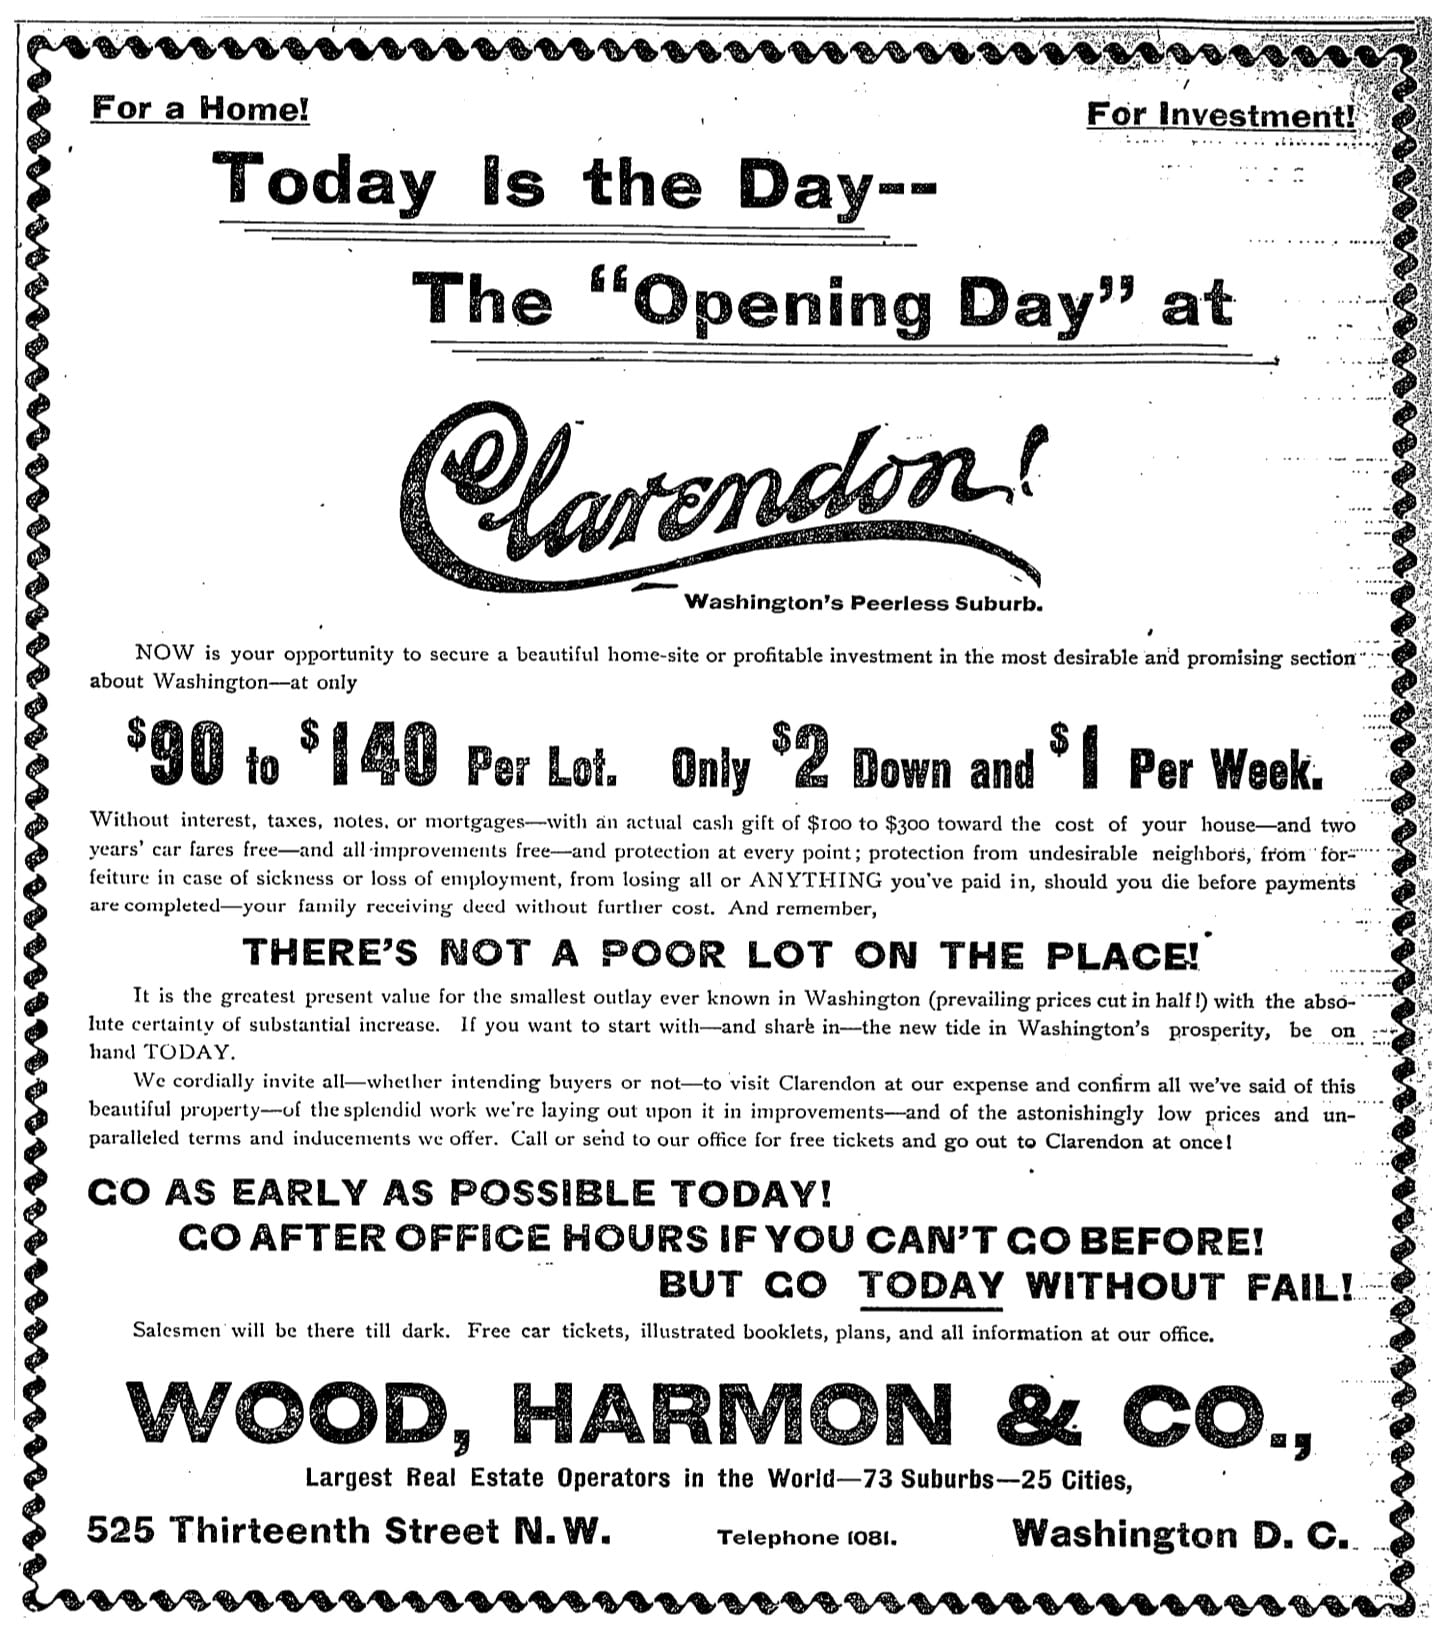 Real estate advertisement for Clarendon in the Washington Post on April 23rd, 1900